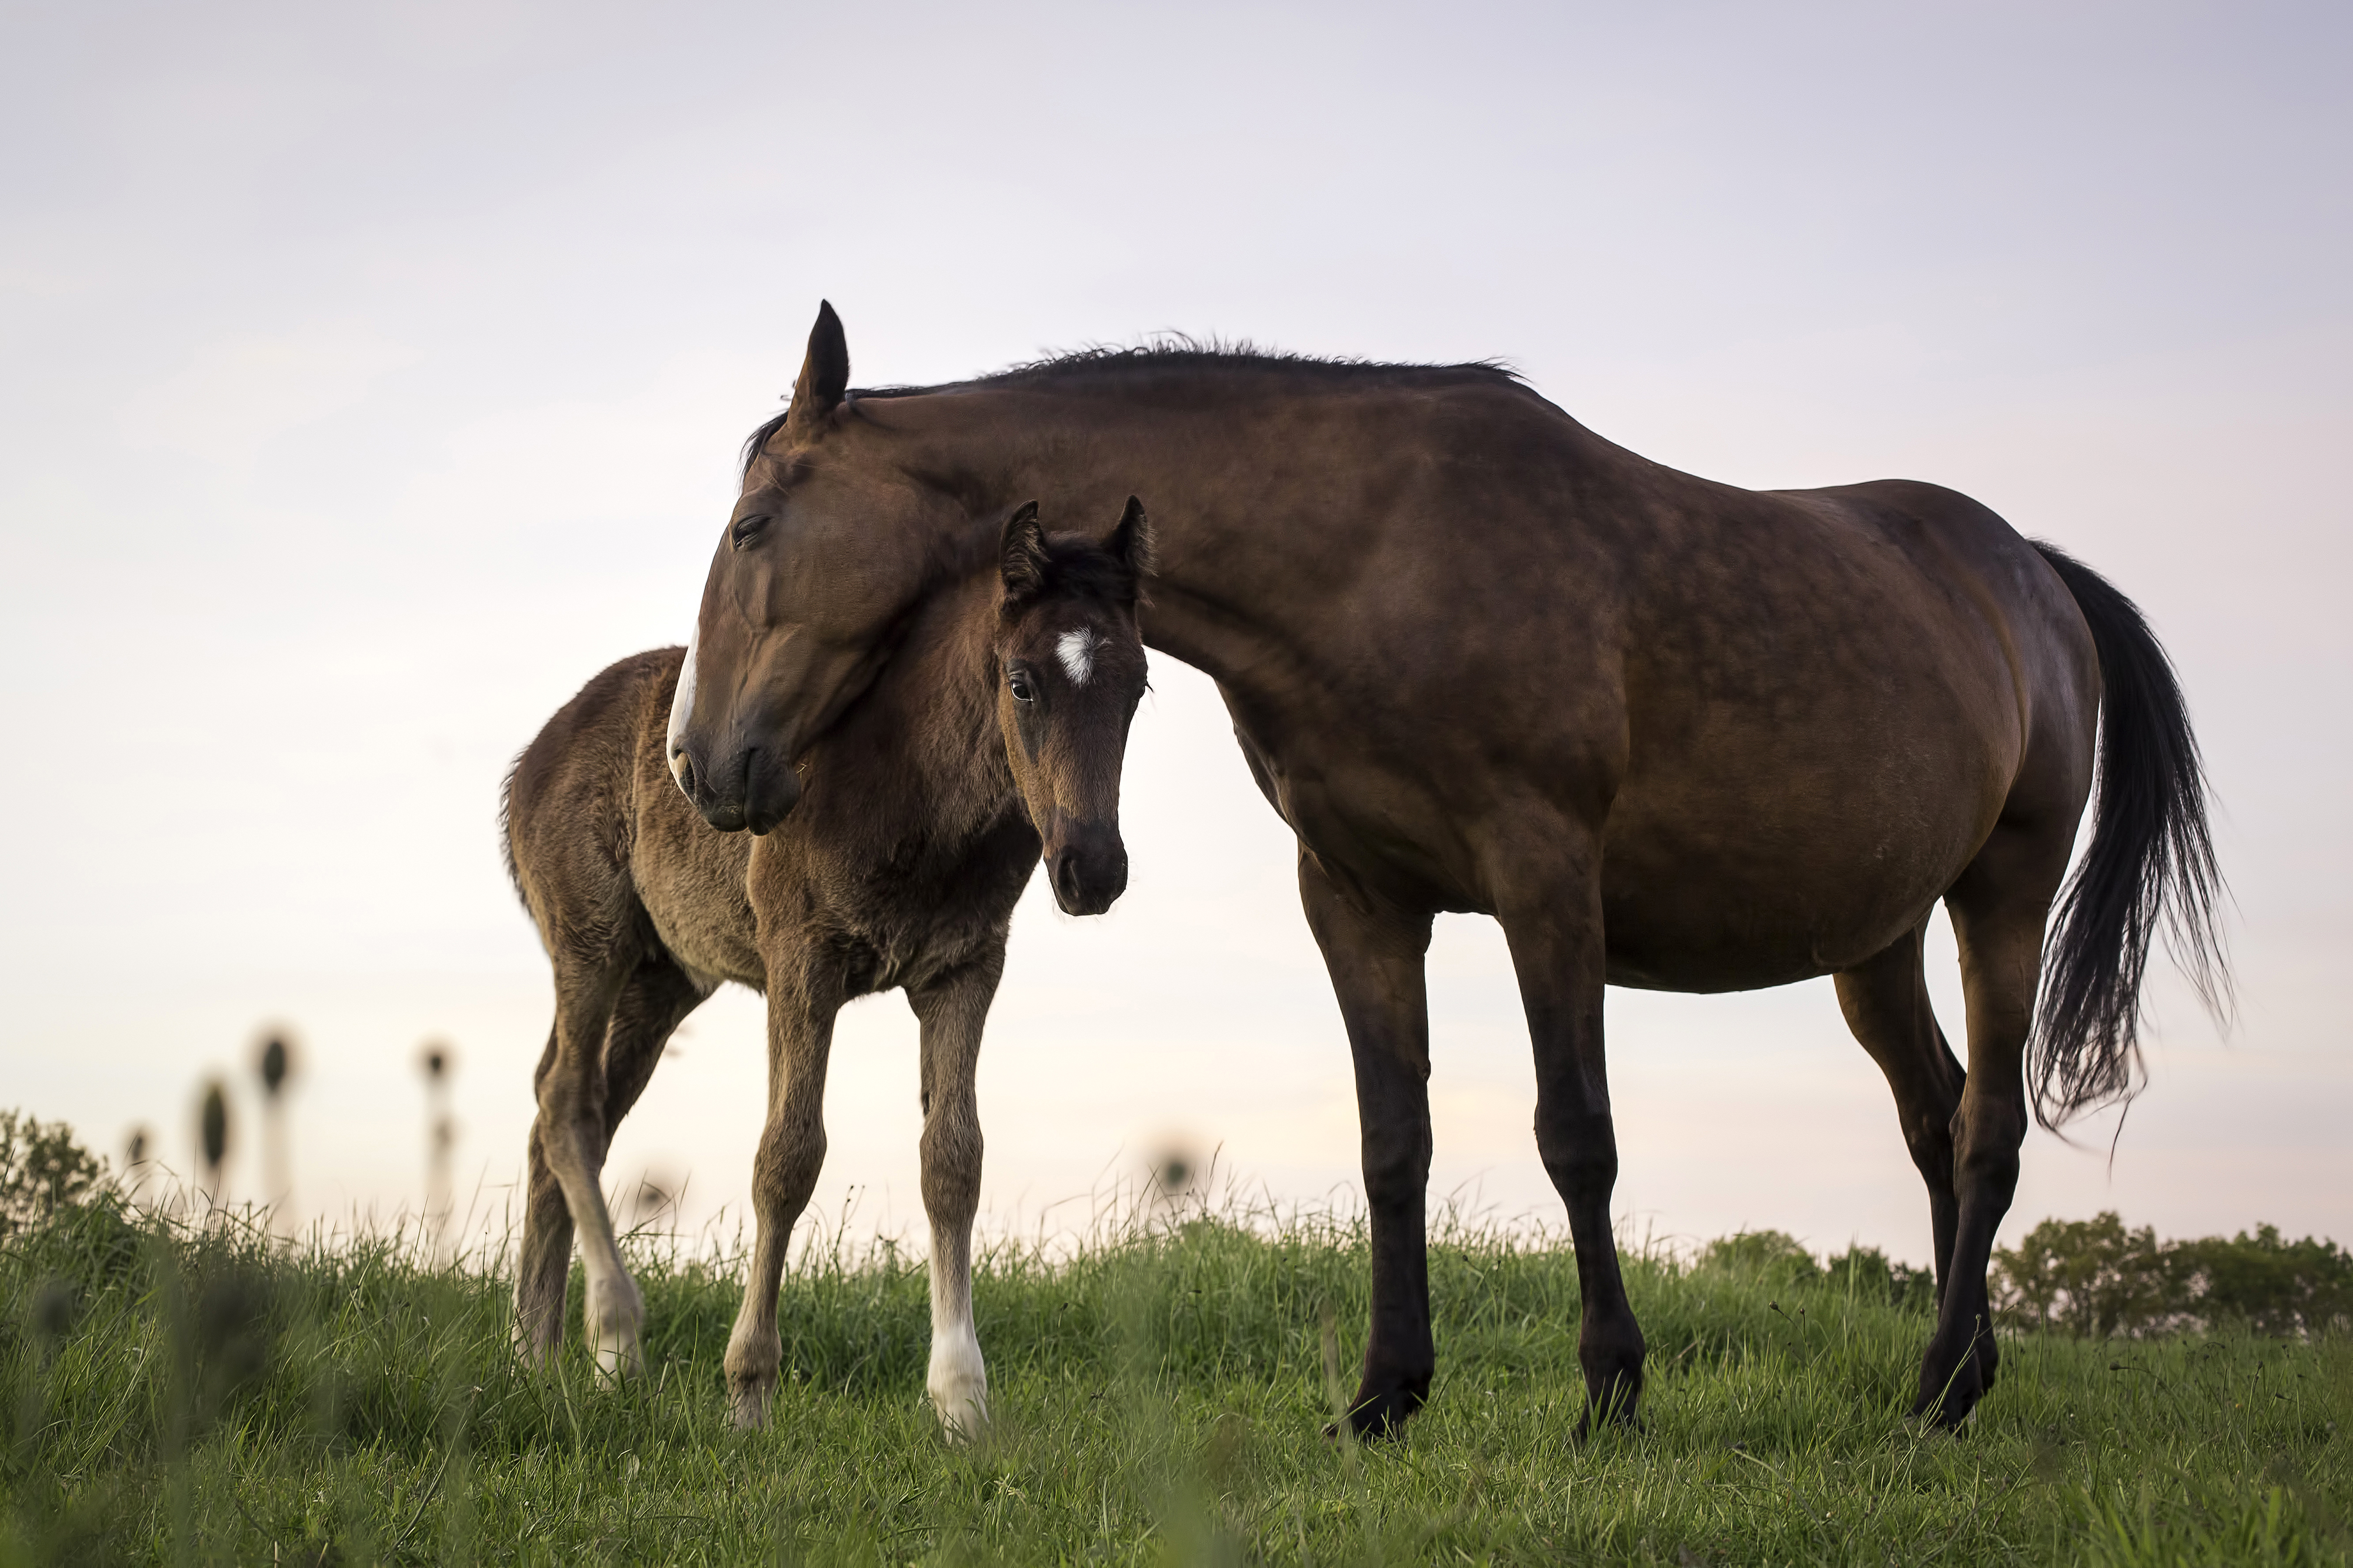 Adopt a wild horse and government will give you $1,000